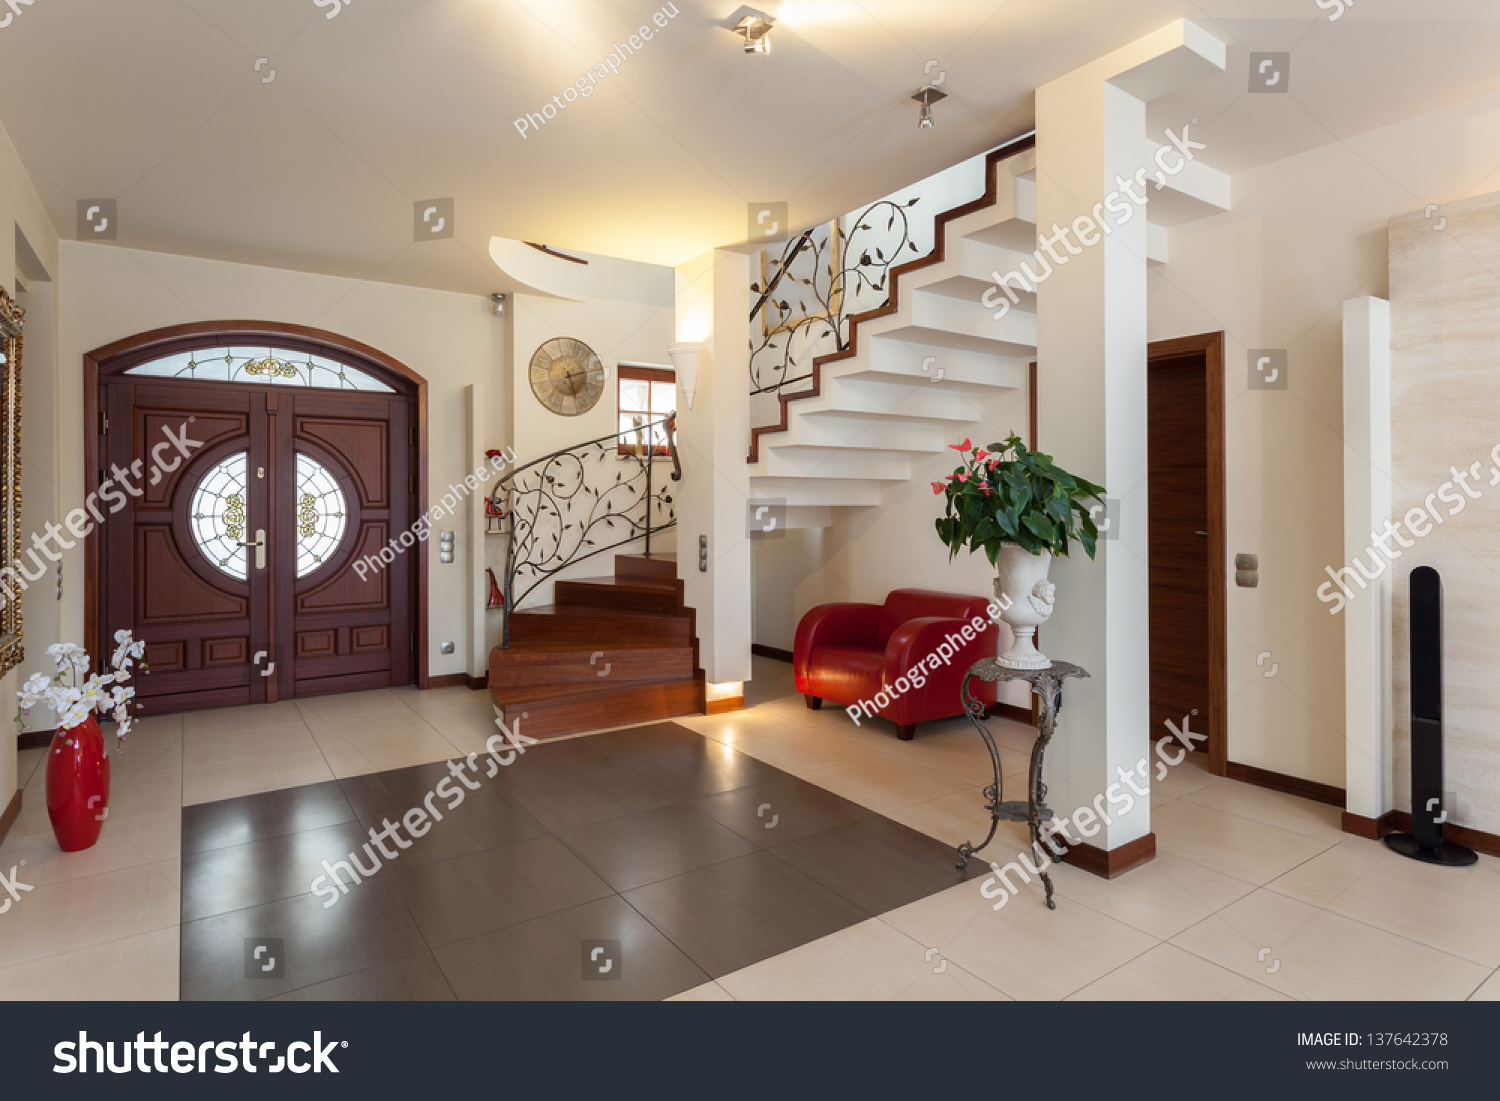 Classy House Entrance Living Room Staircase Stock Photo 137642378